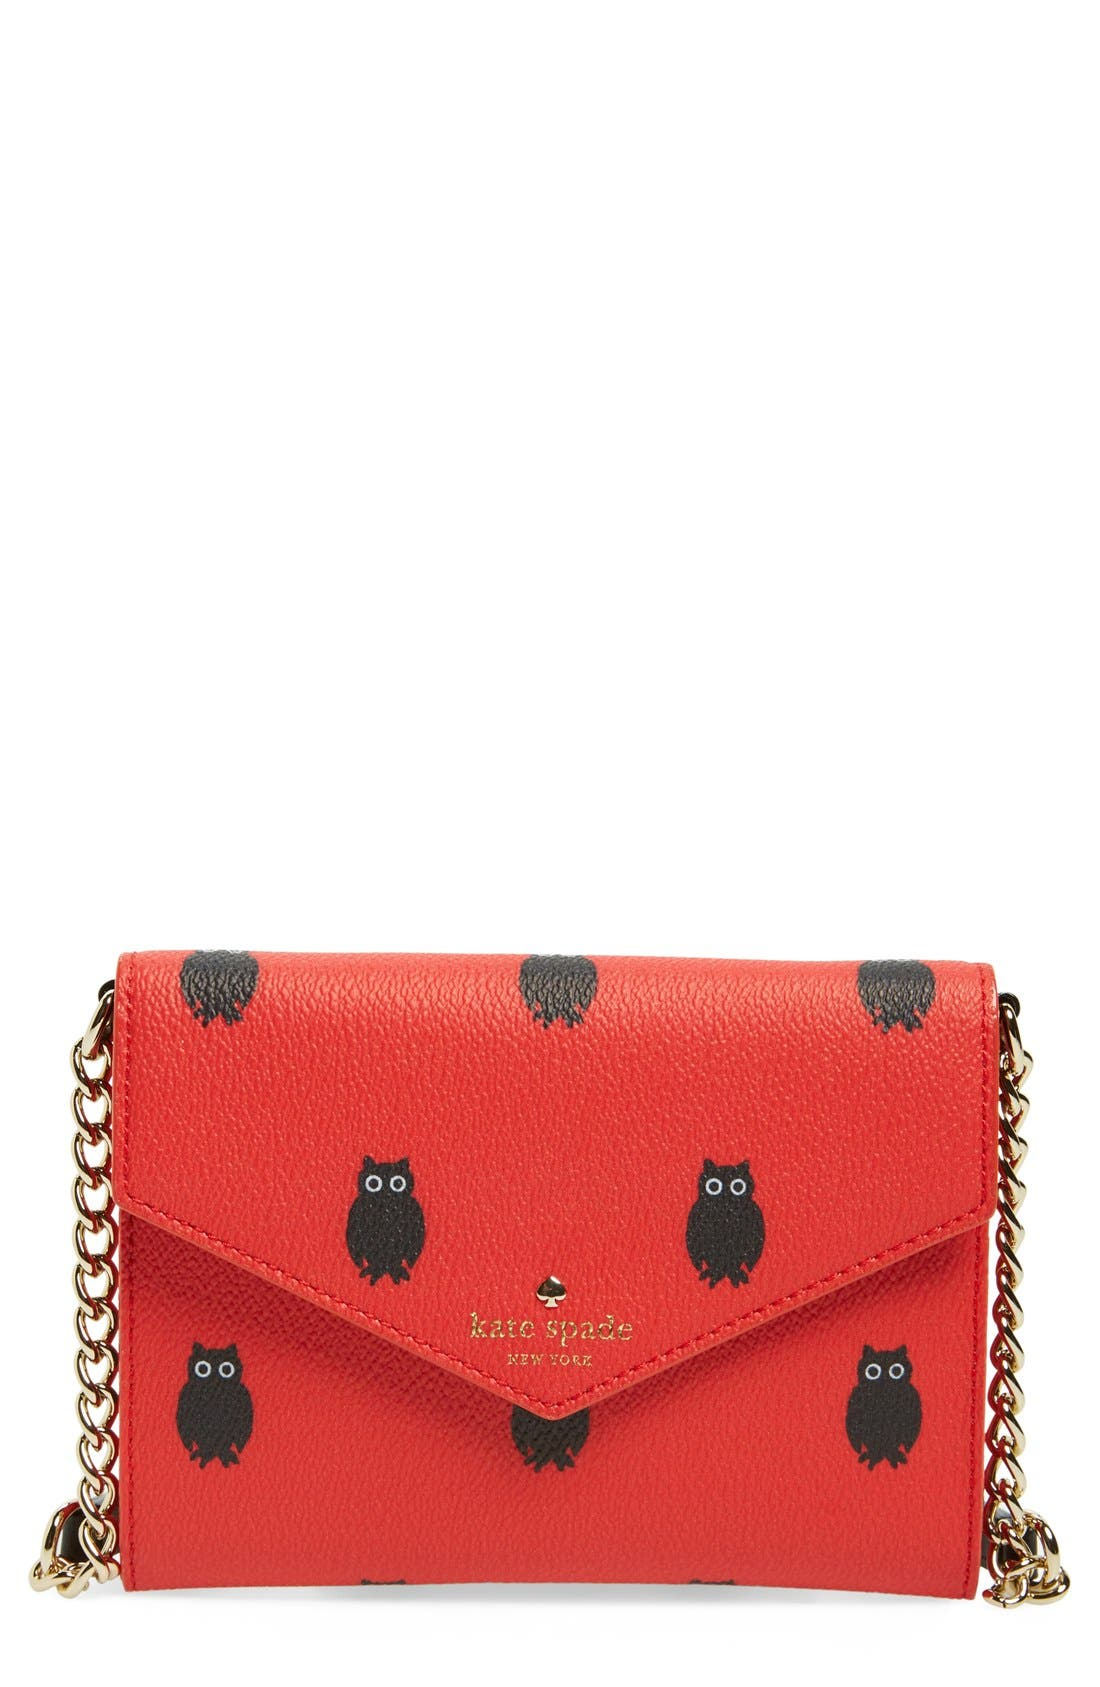 Main Image - kate spade new york 'hawthorne lane owls monday' crossbody clutch (Nordstrom Exclusive)